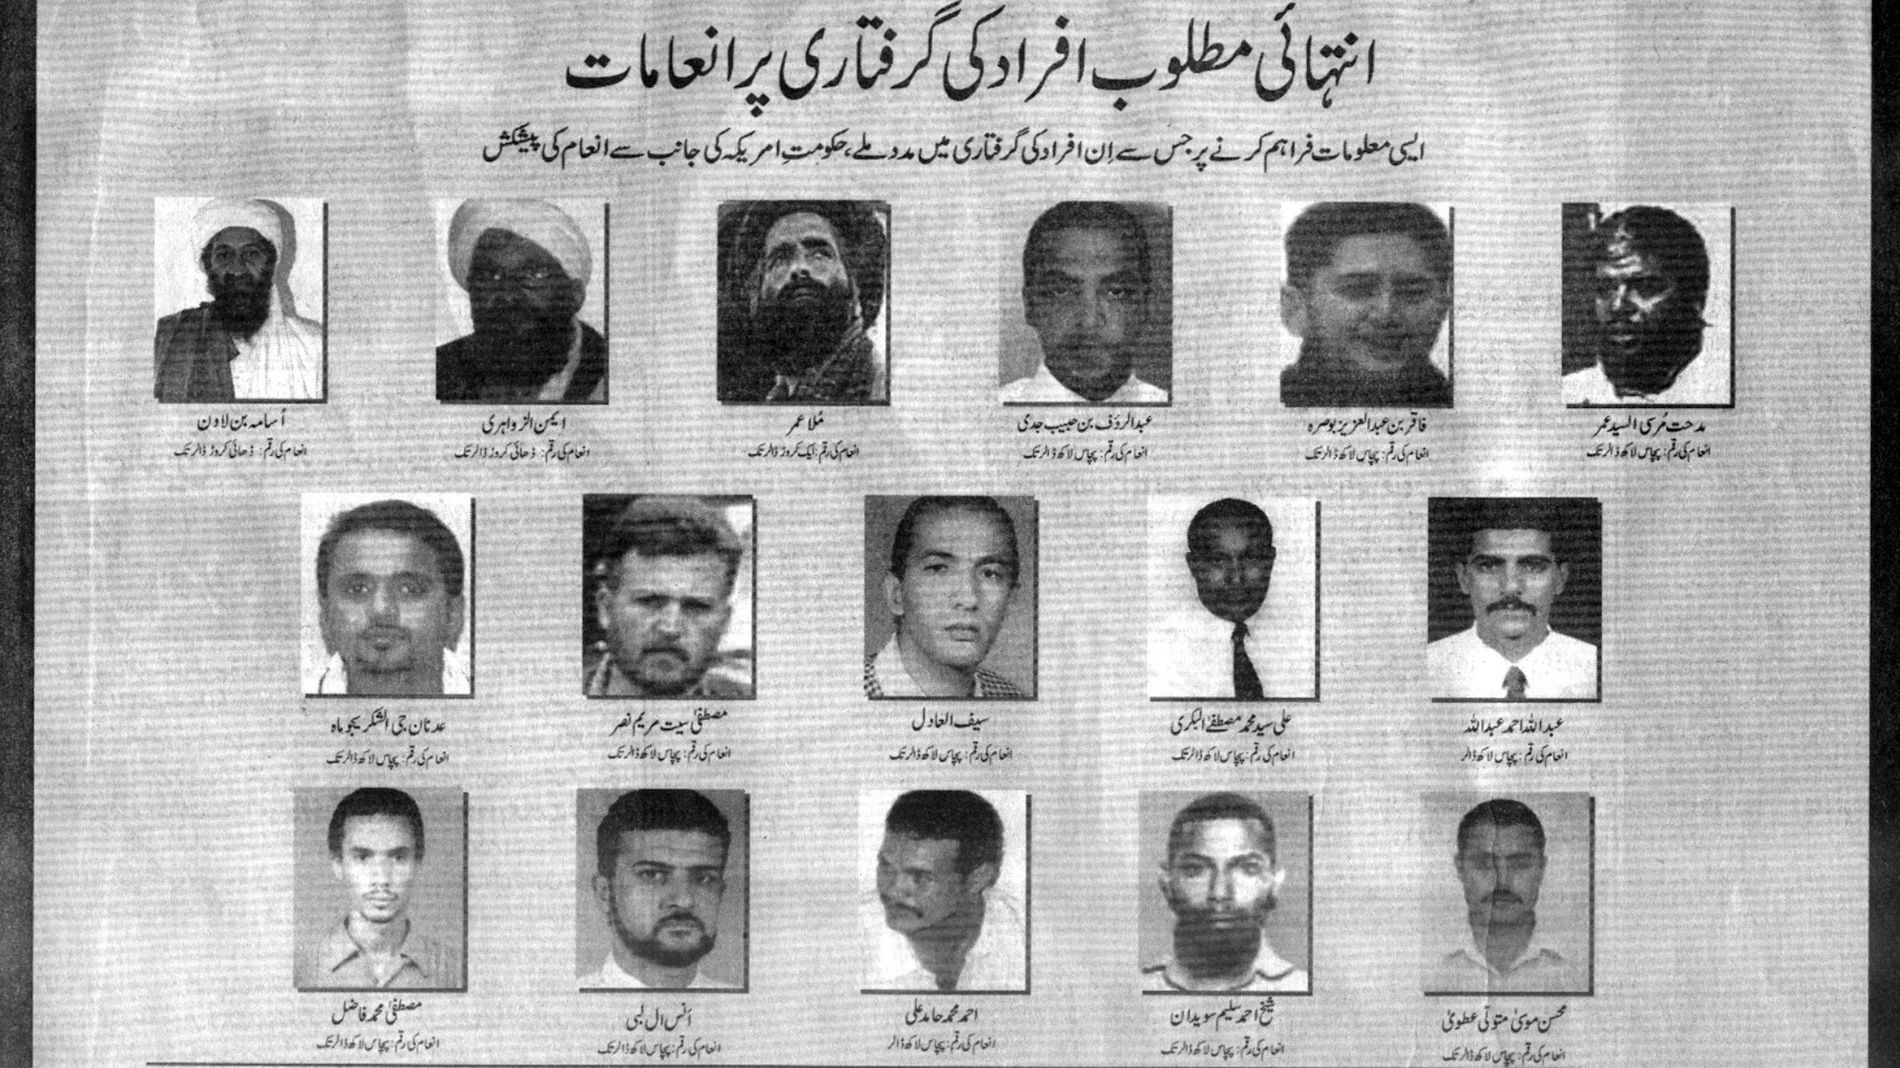 A notice in a Pakistani daily lists the awards for militants. The notice offers rewards for any information which could lead to the capture of the men. $10 million was being offered for Mullah Omar (third from the left on the top row.)